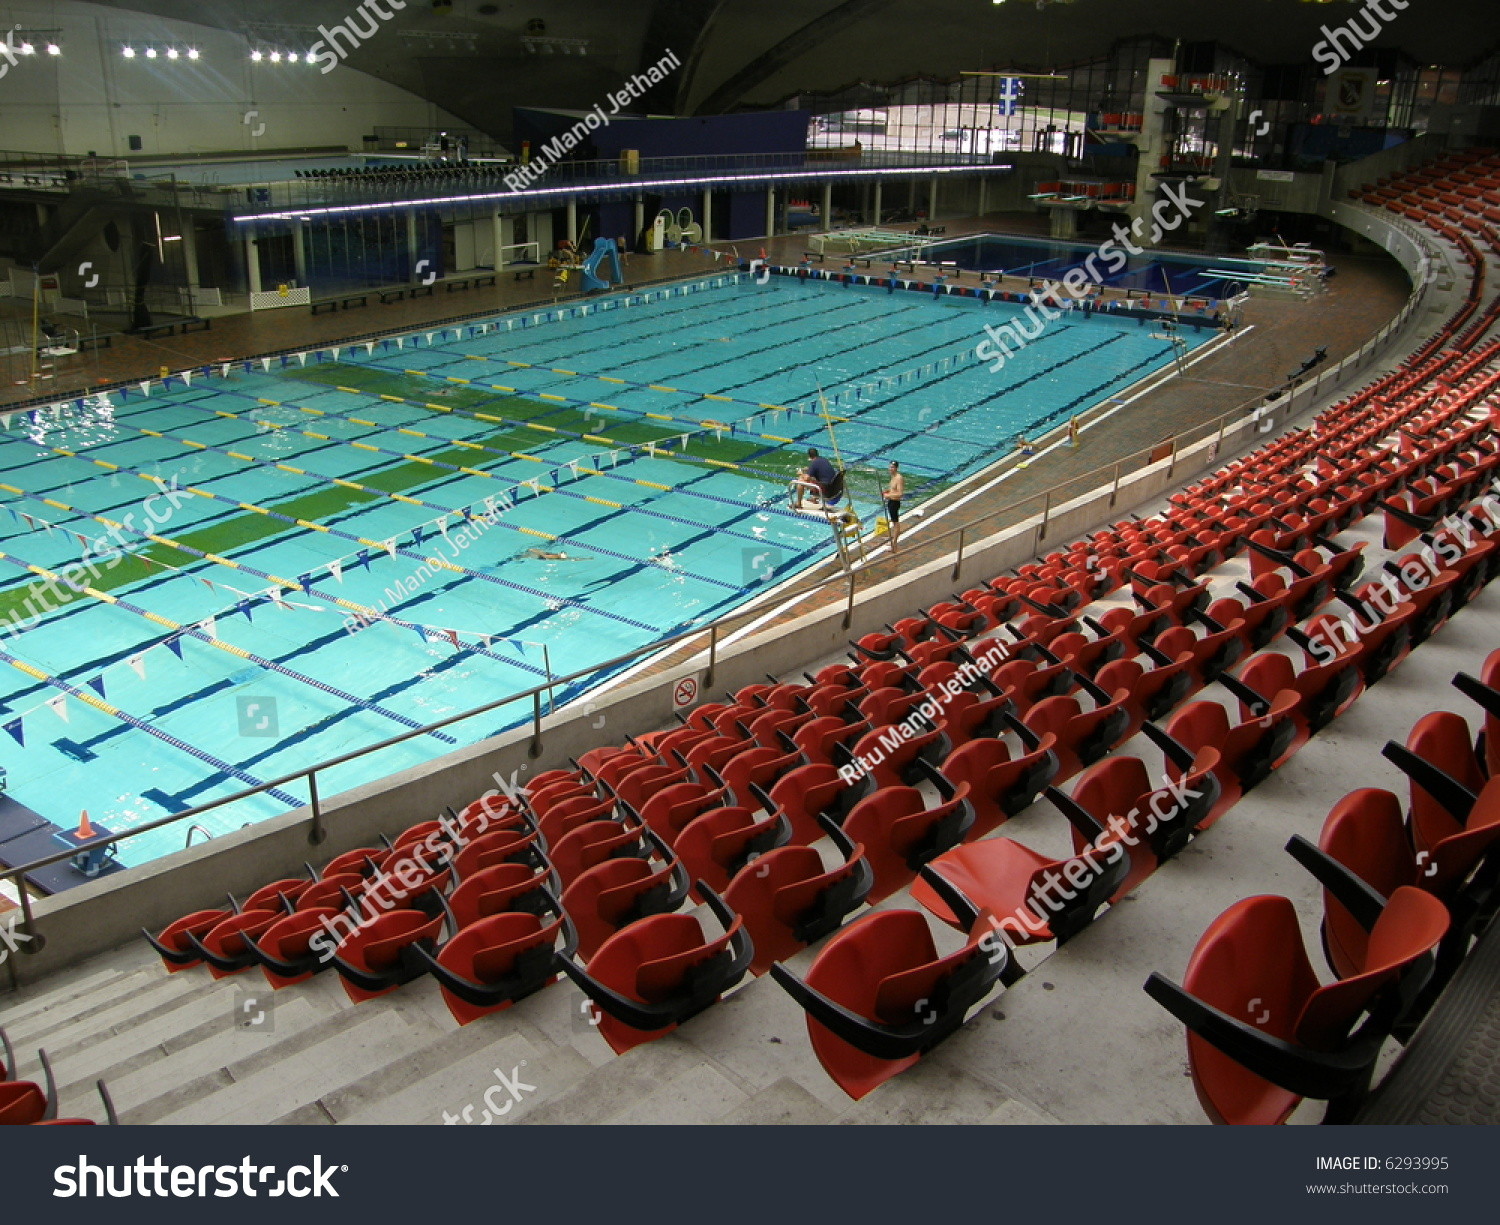 Swimming Pool At The Olympic Stadium In Montreal Quebec Canada Stock Photo 6293995 Shutterstock